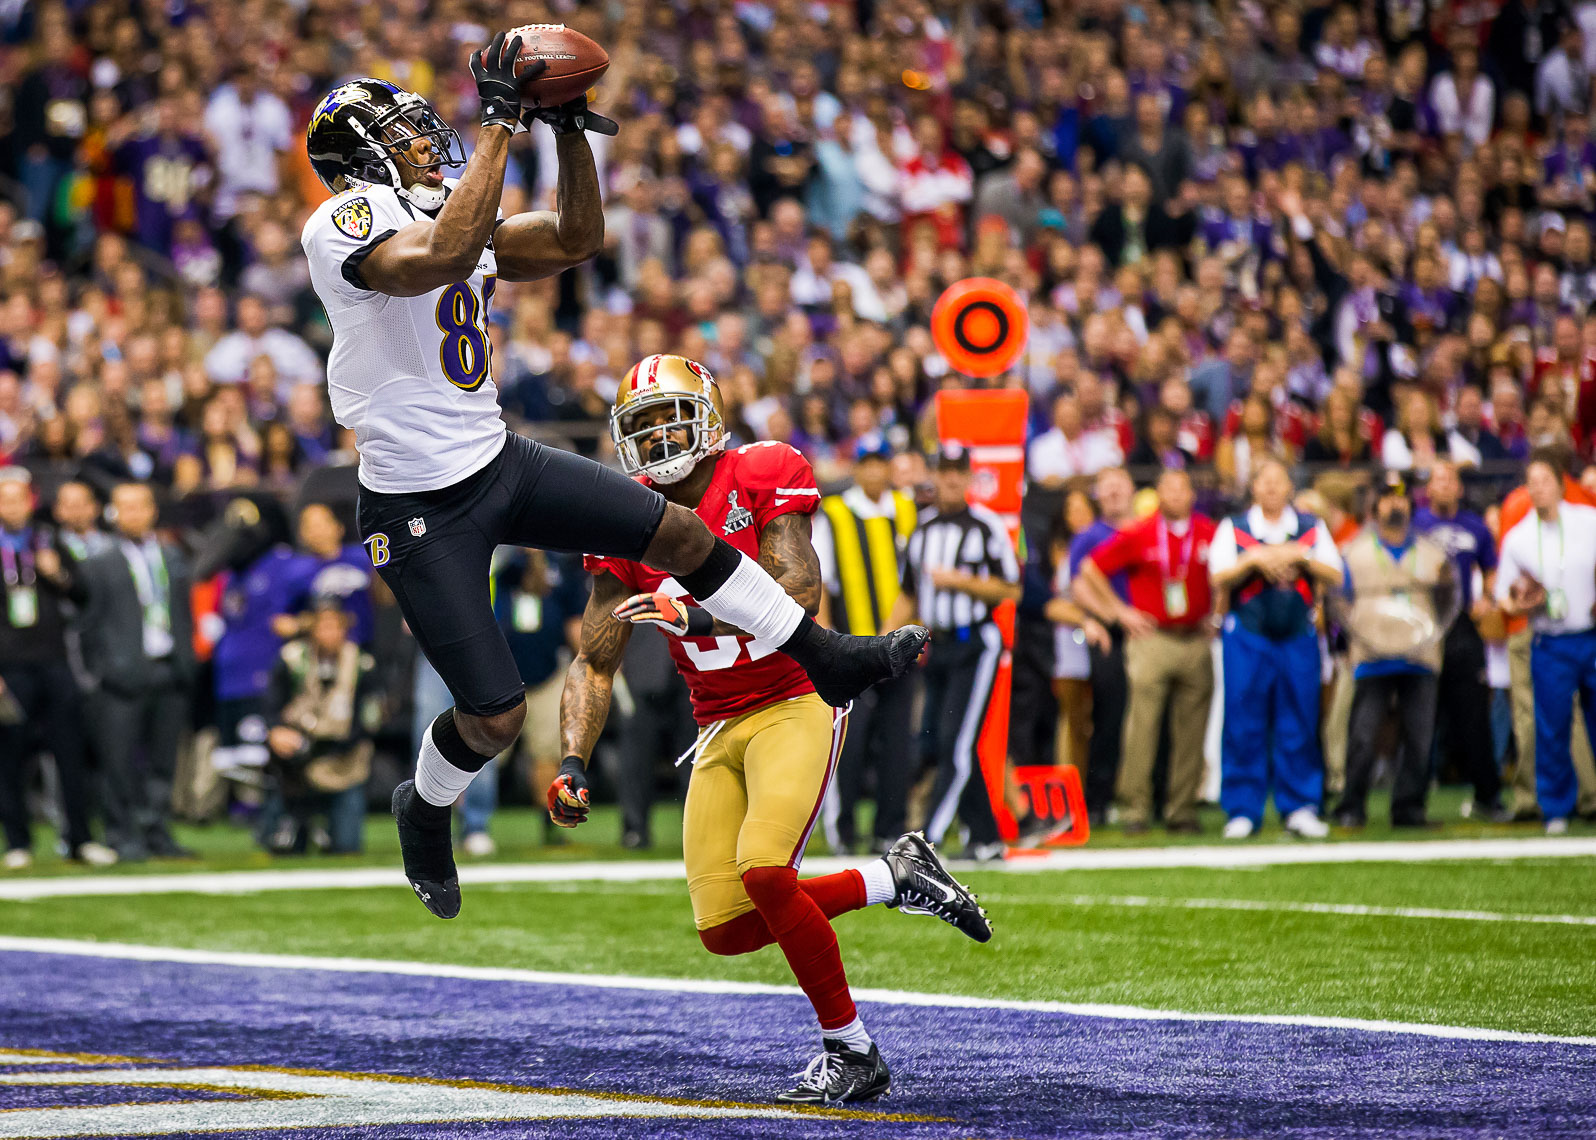 superbowl35_  Best Super Bowl XLVII 47 photos between Baltimore Ravens and 49ers Harbaugh Bowl Anquan Boldin touchdown